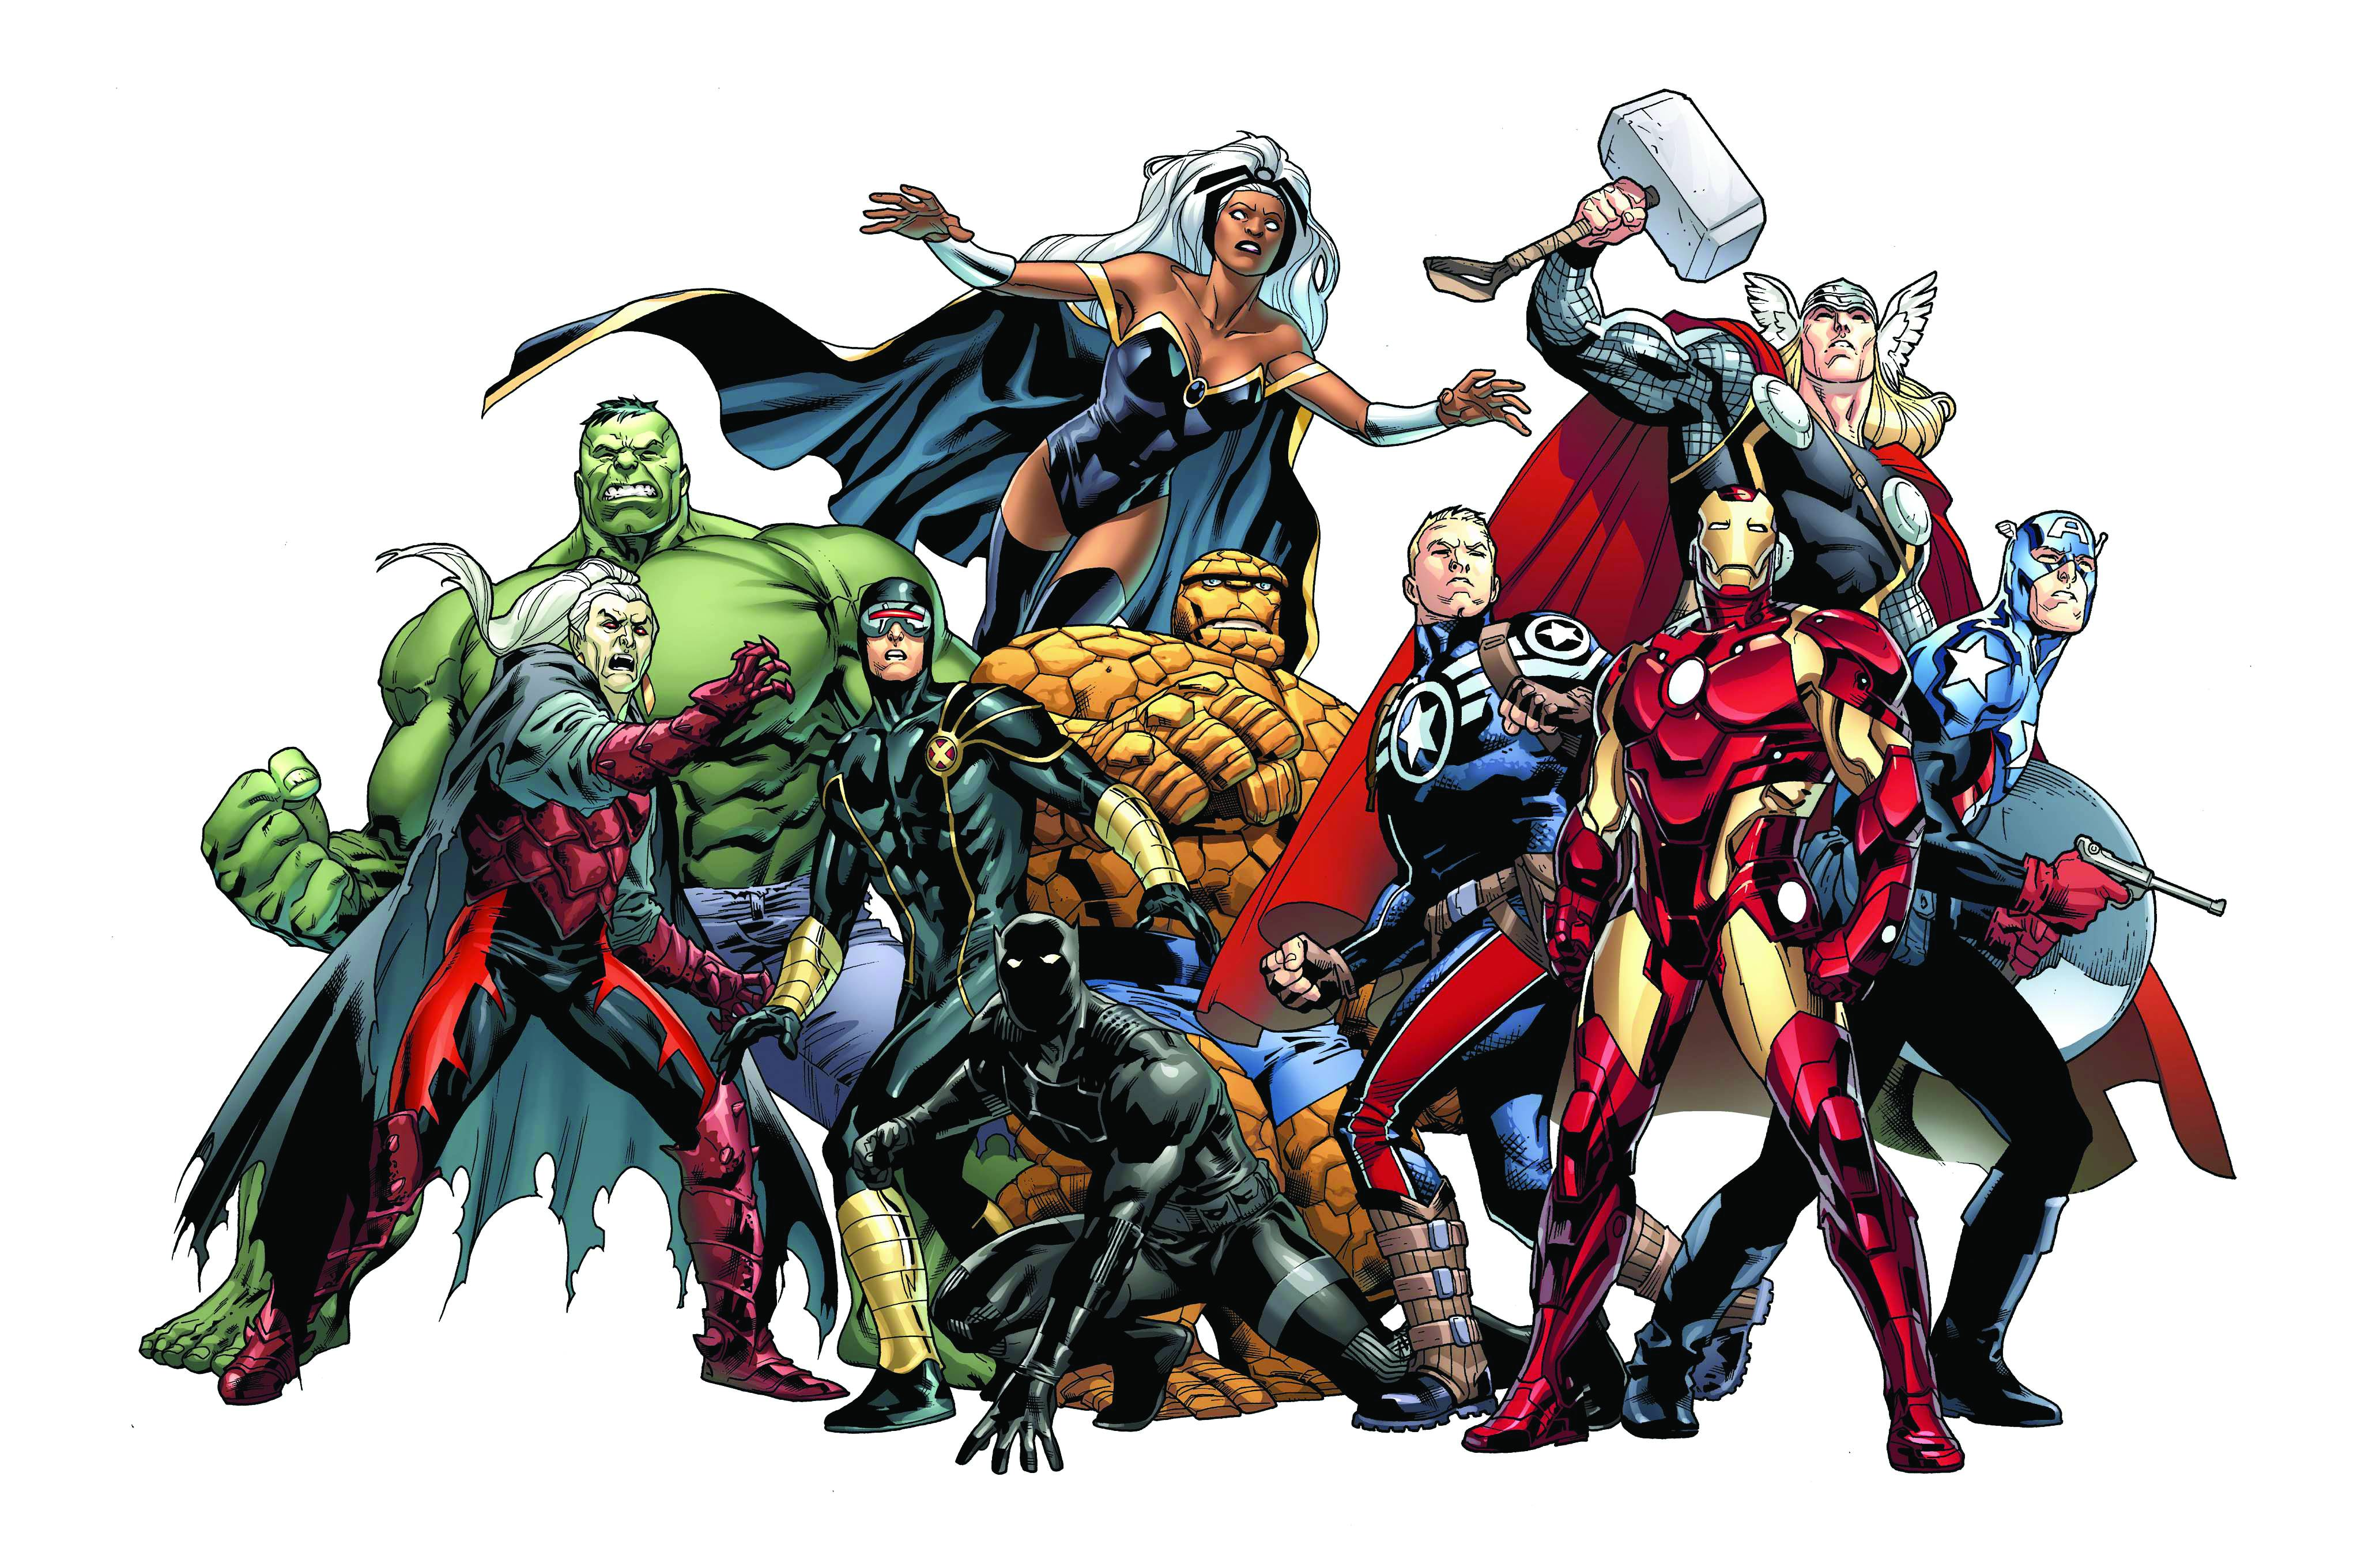 Fear Itself comics marvel superhero wallpaper 4129x2700 44221 4129x2700